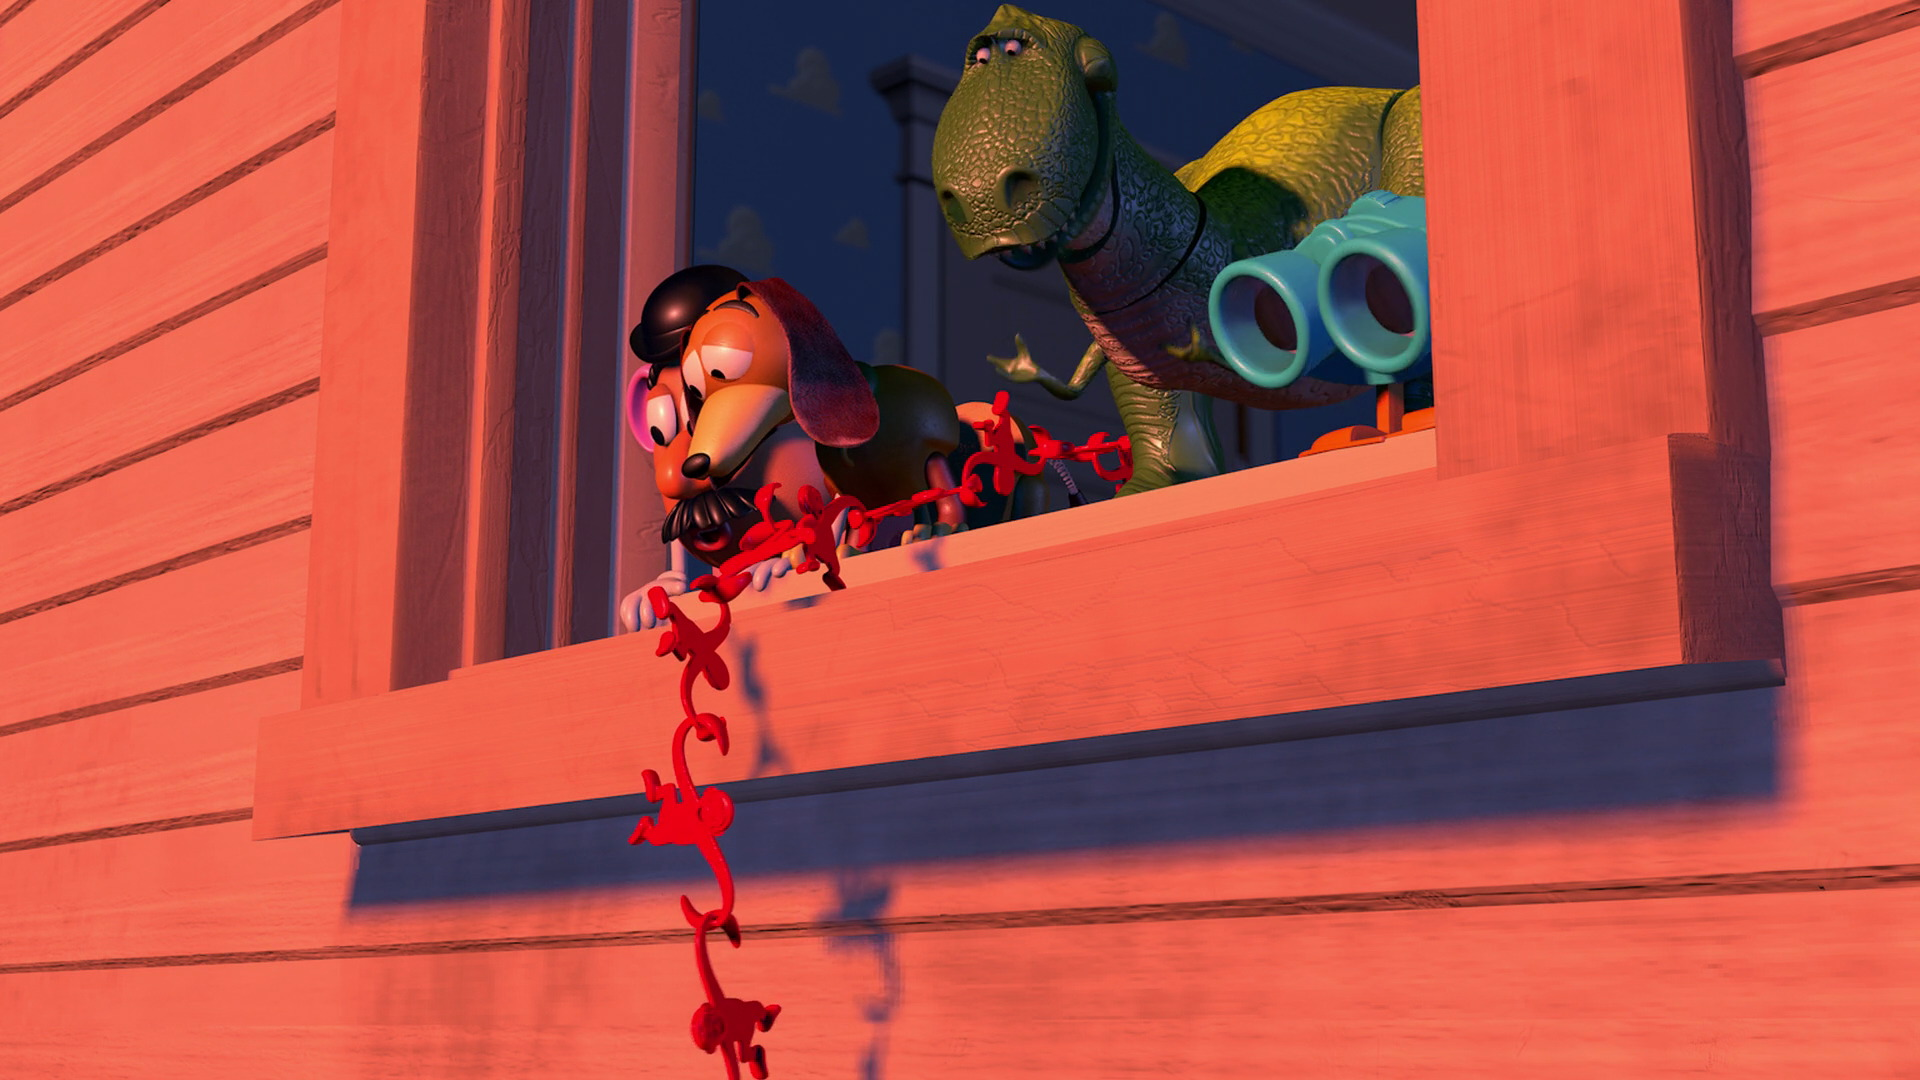 ouistitis-personnage-toy-story-01